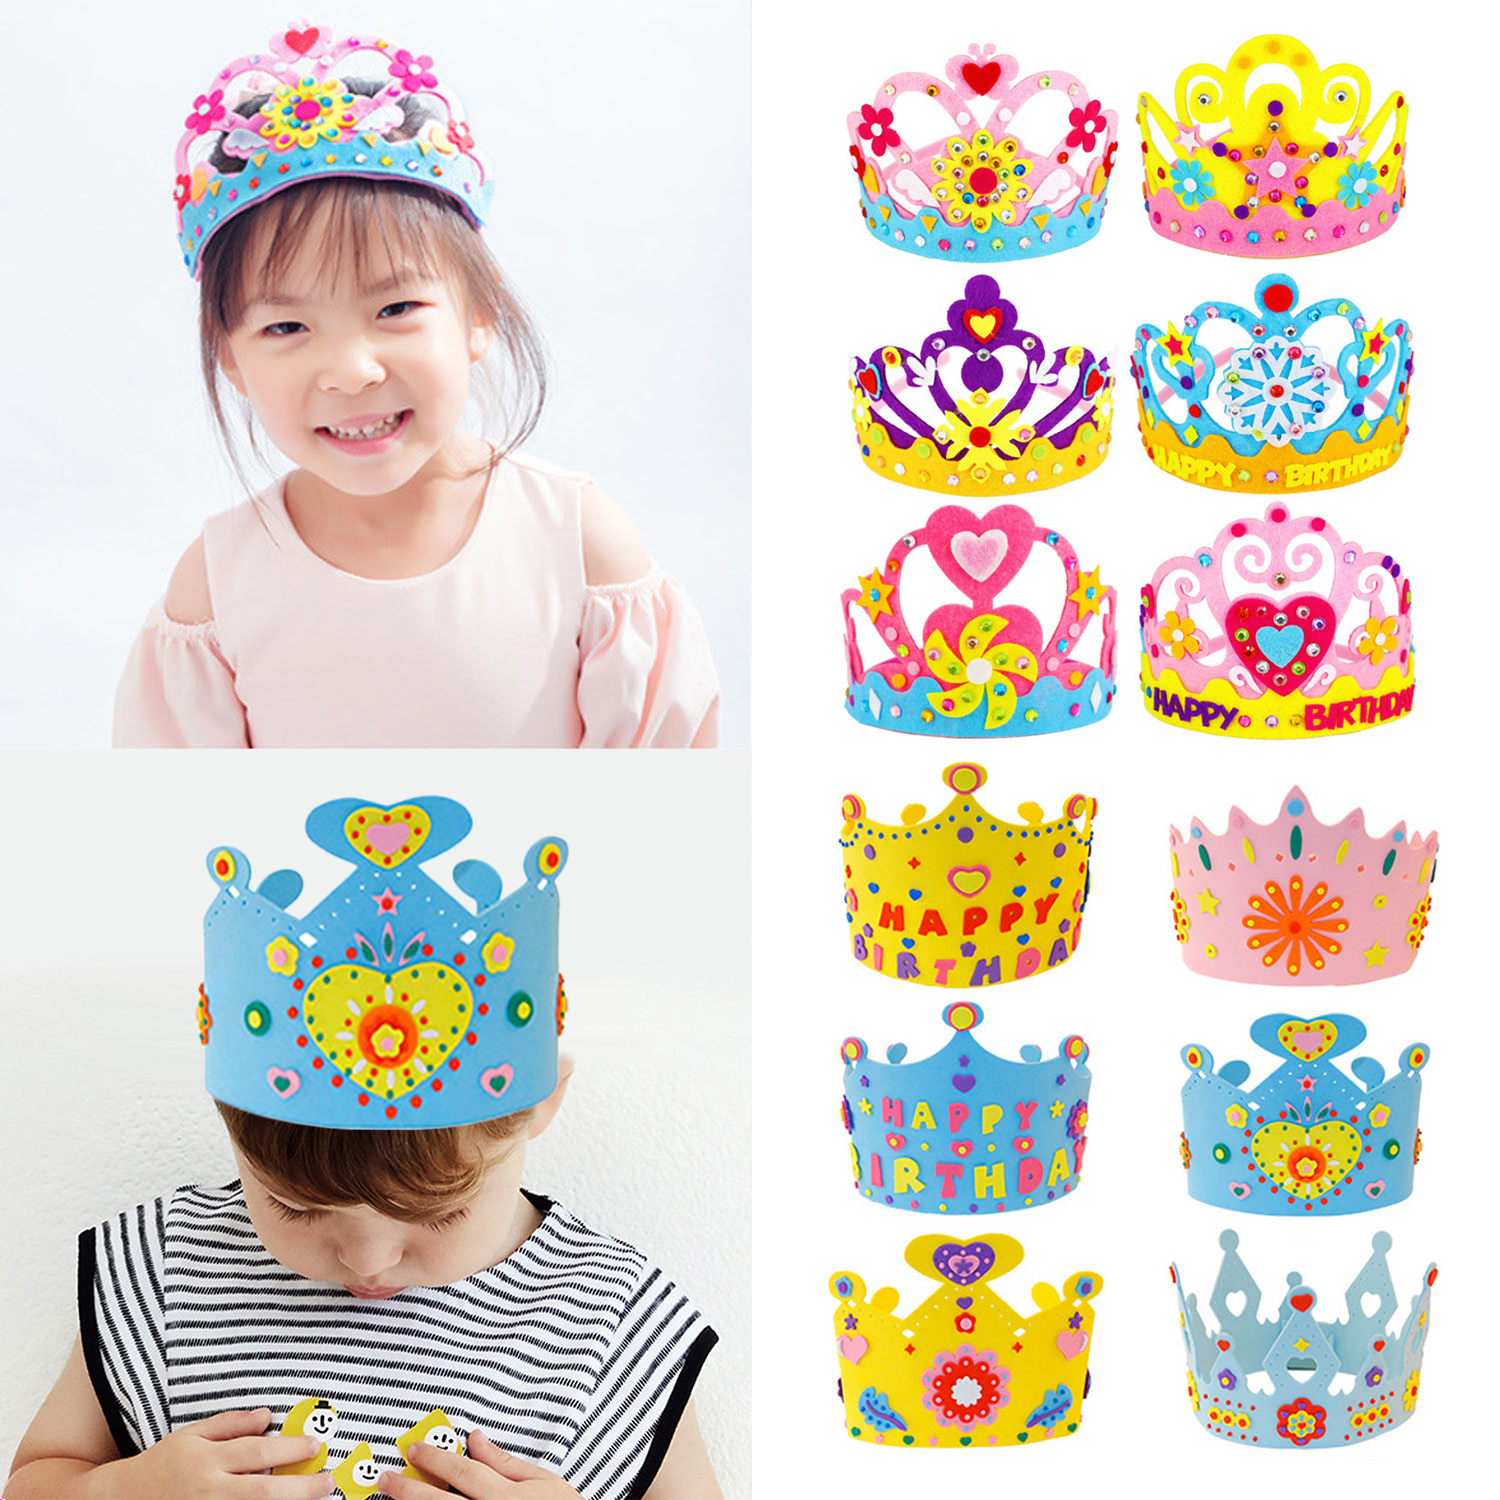 Handmade Foam Paper Sequins Crown Kit Birthday Tiaras Hat Material DIY Craft Toy For Children Kid Party Decorations Random Style